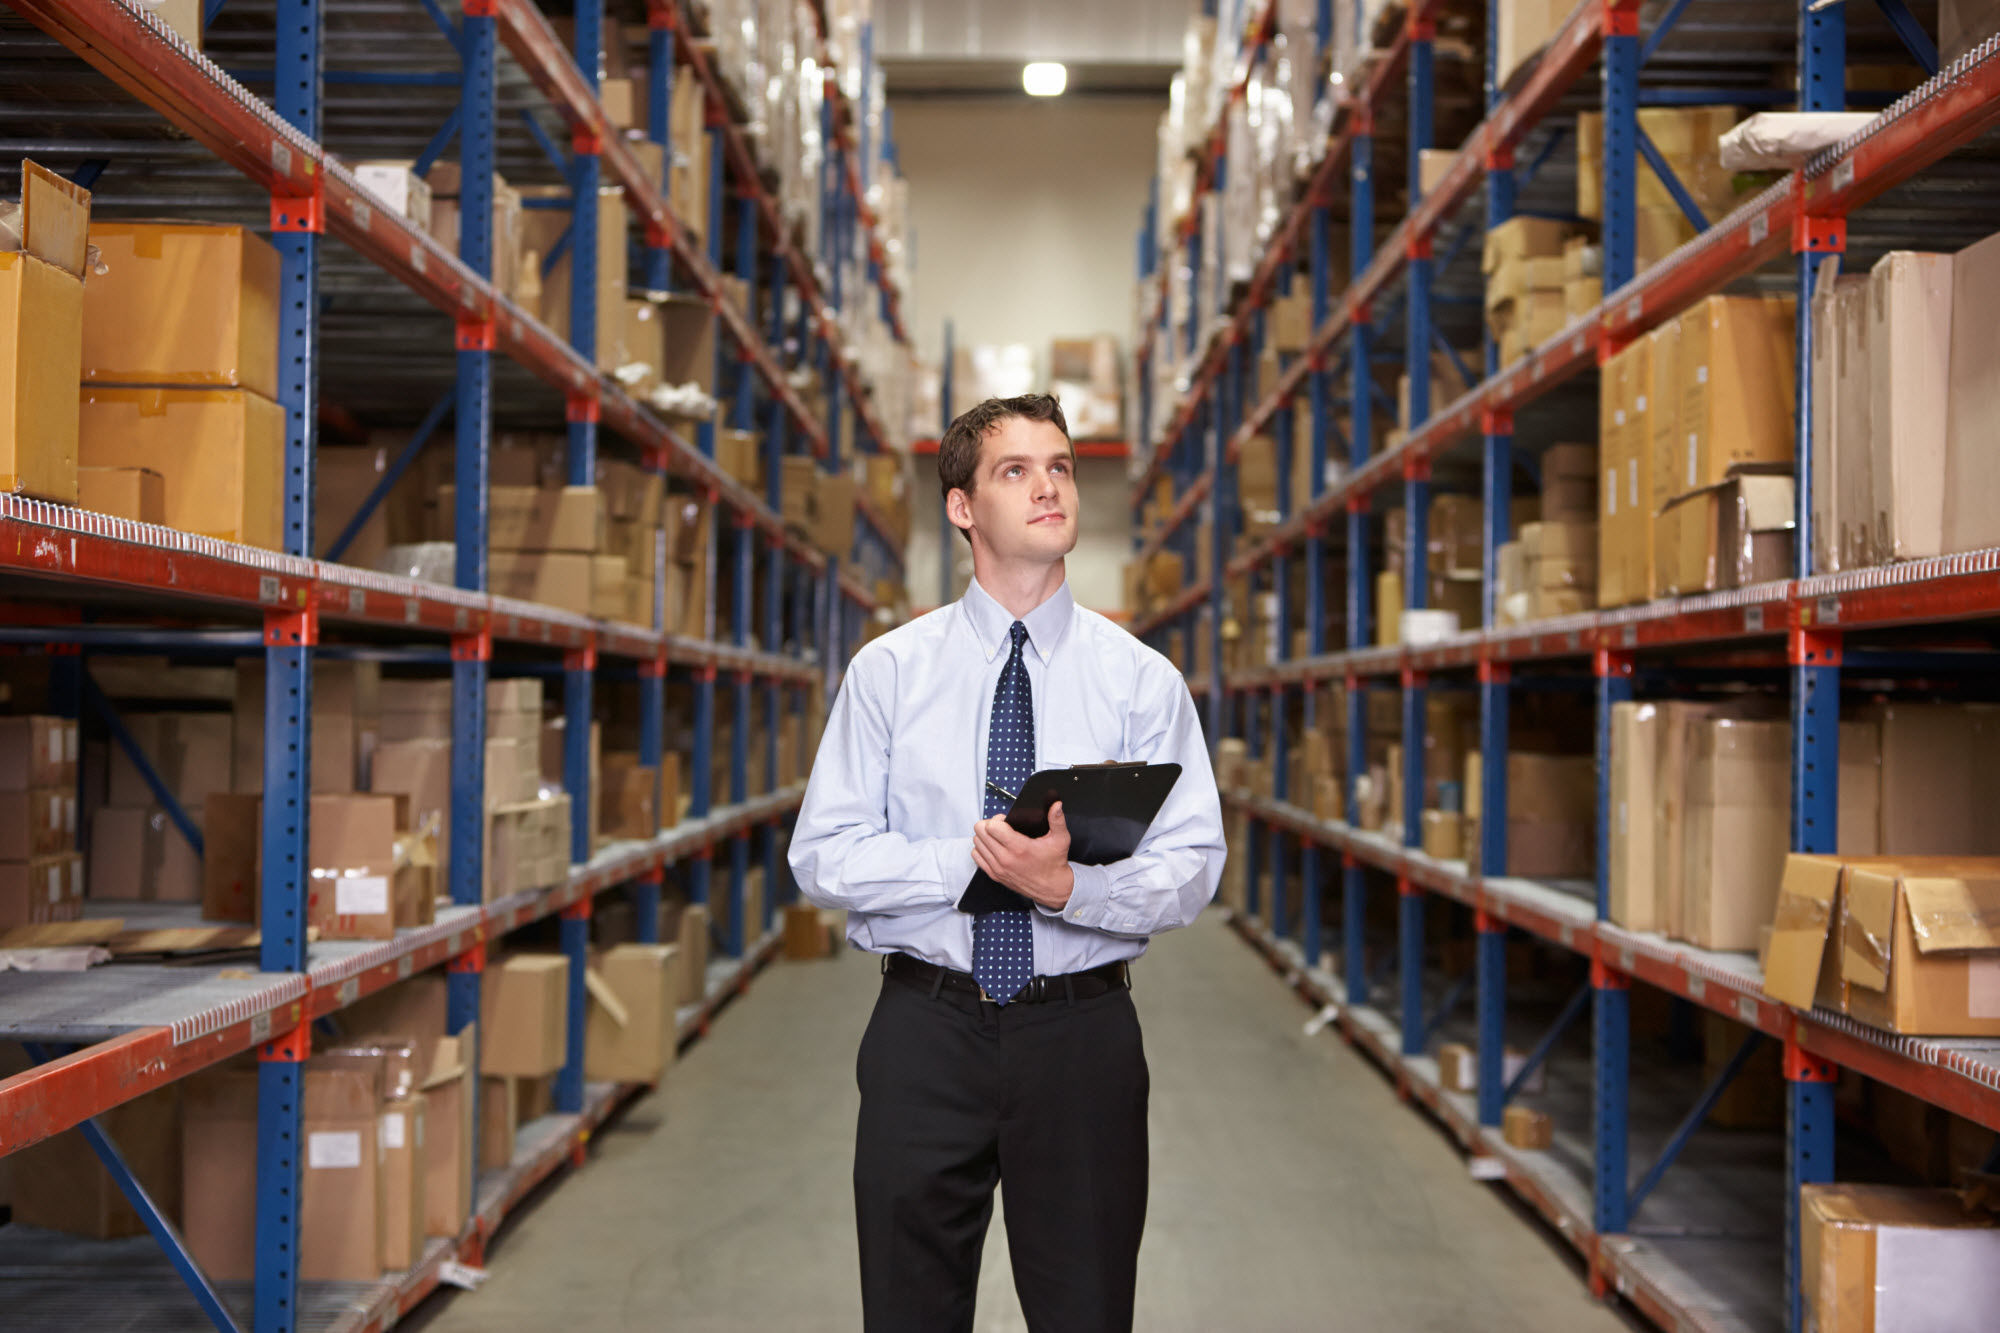 Warehouse Operation and Management